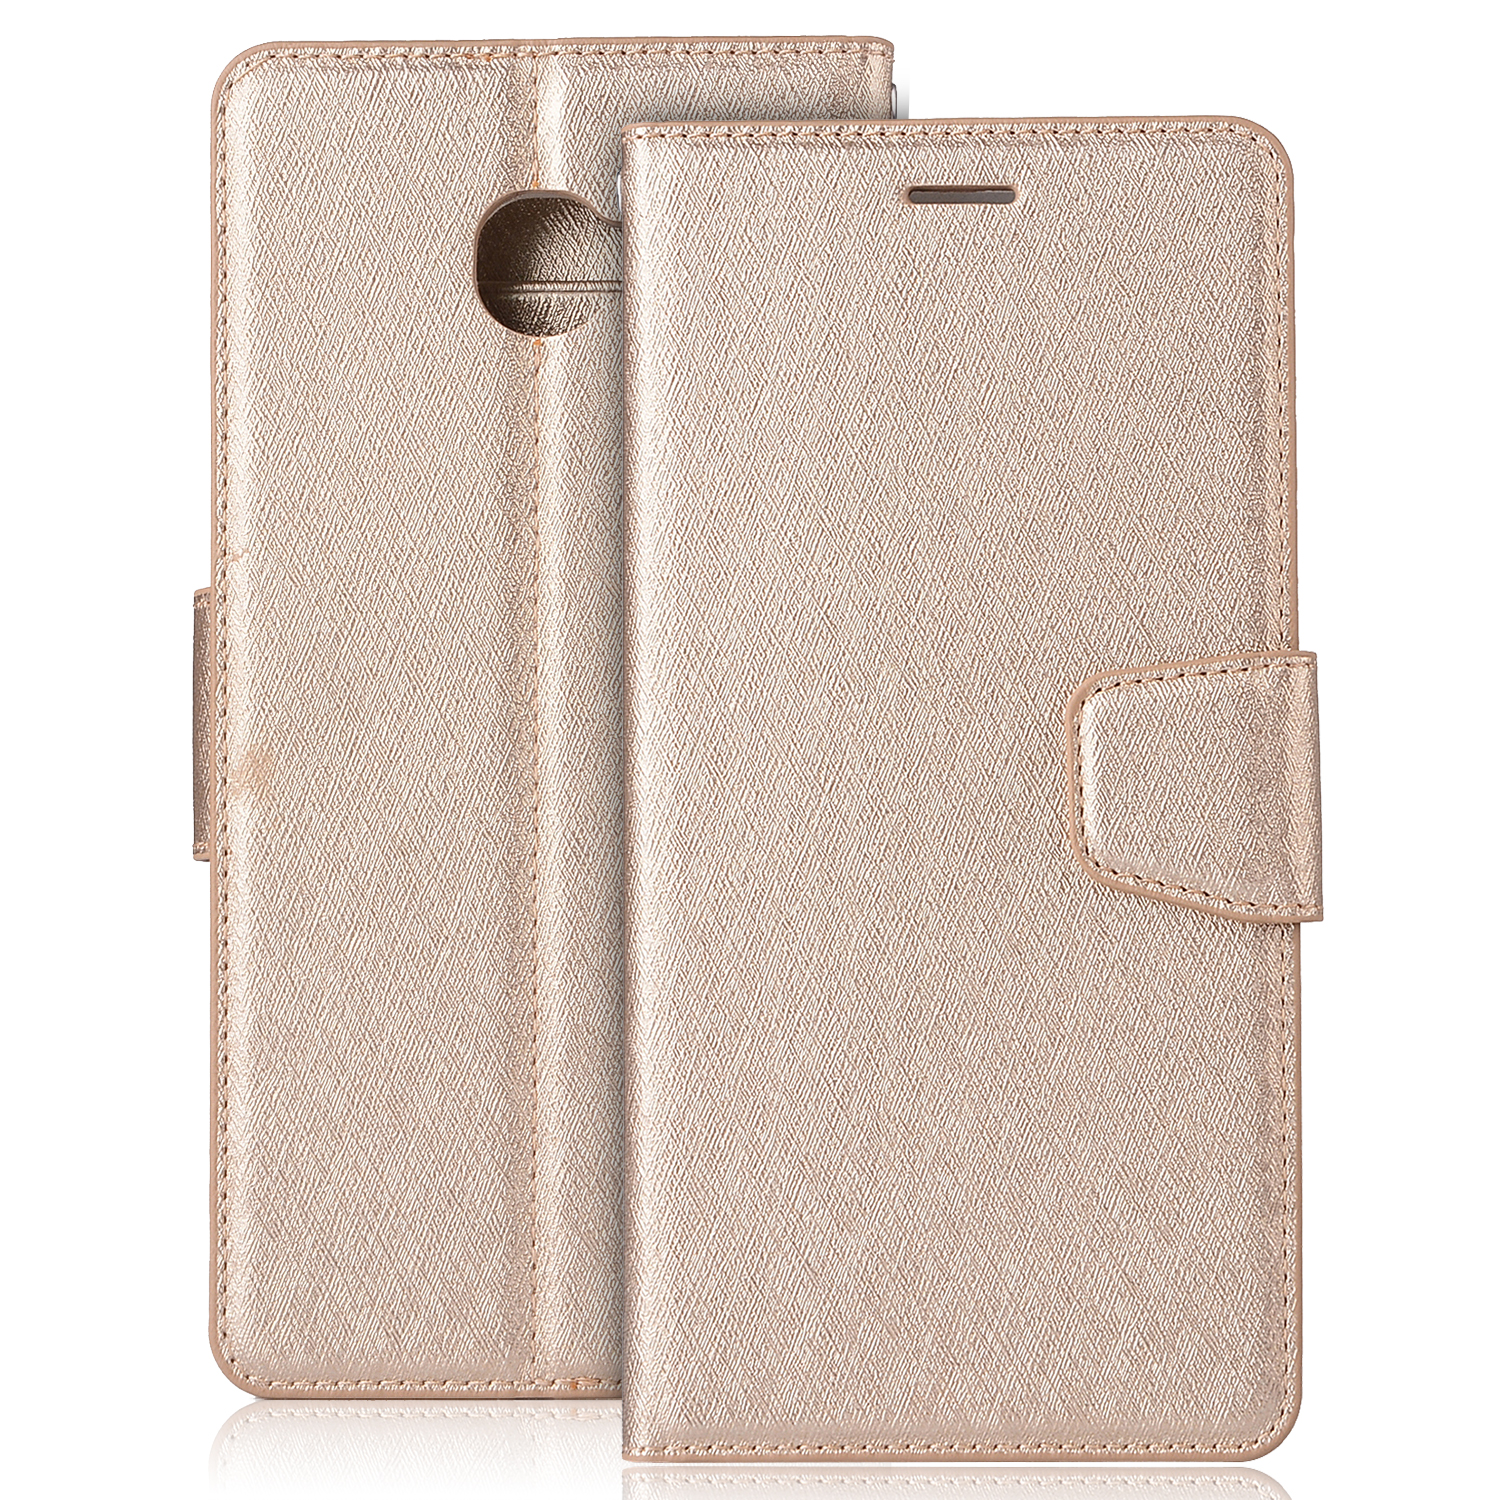 Luxury Wallet case For Samsung Galaxy J5 Prime / J7 Prime Flip Magnet Leather Capa Stand Crad pocket Photo Frame phone Cover